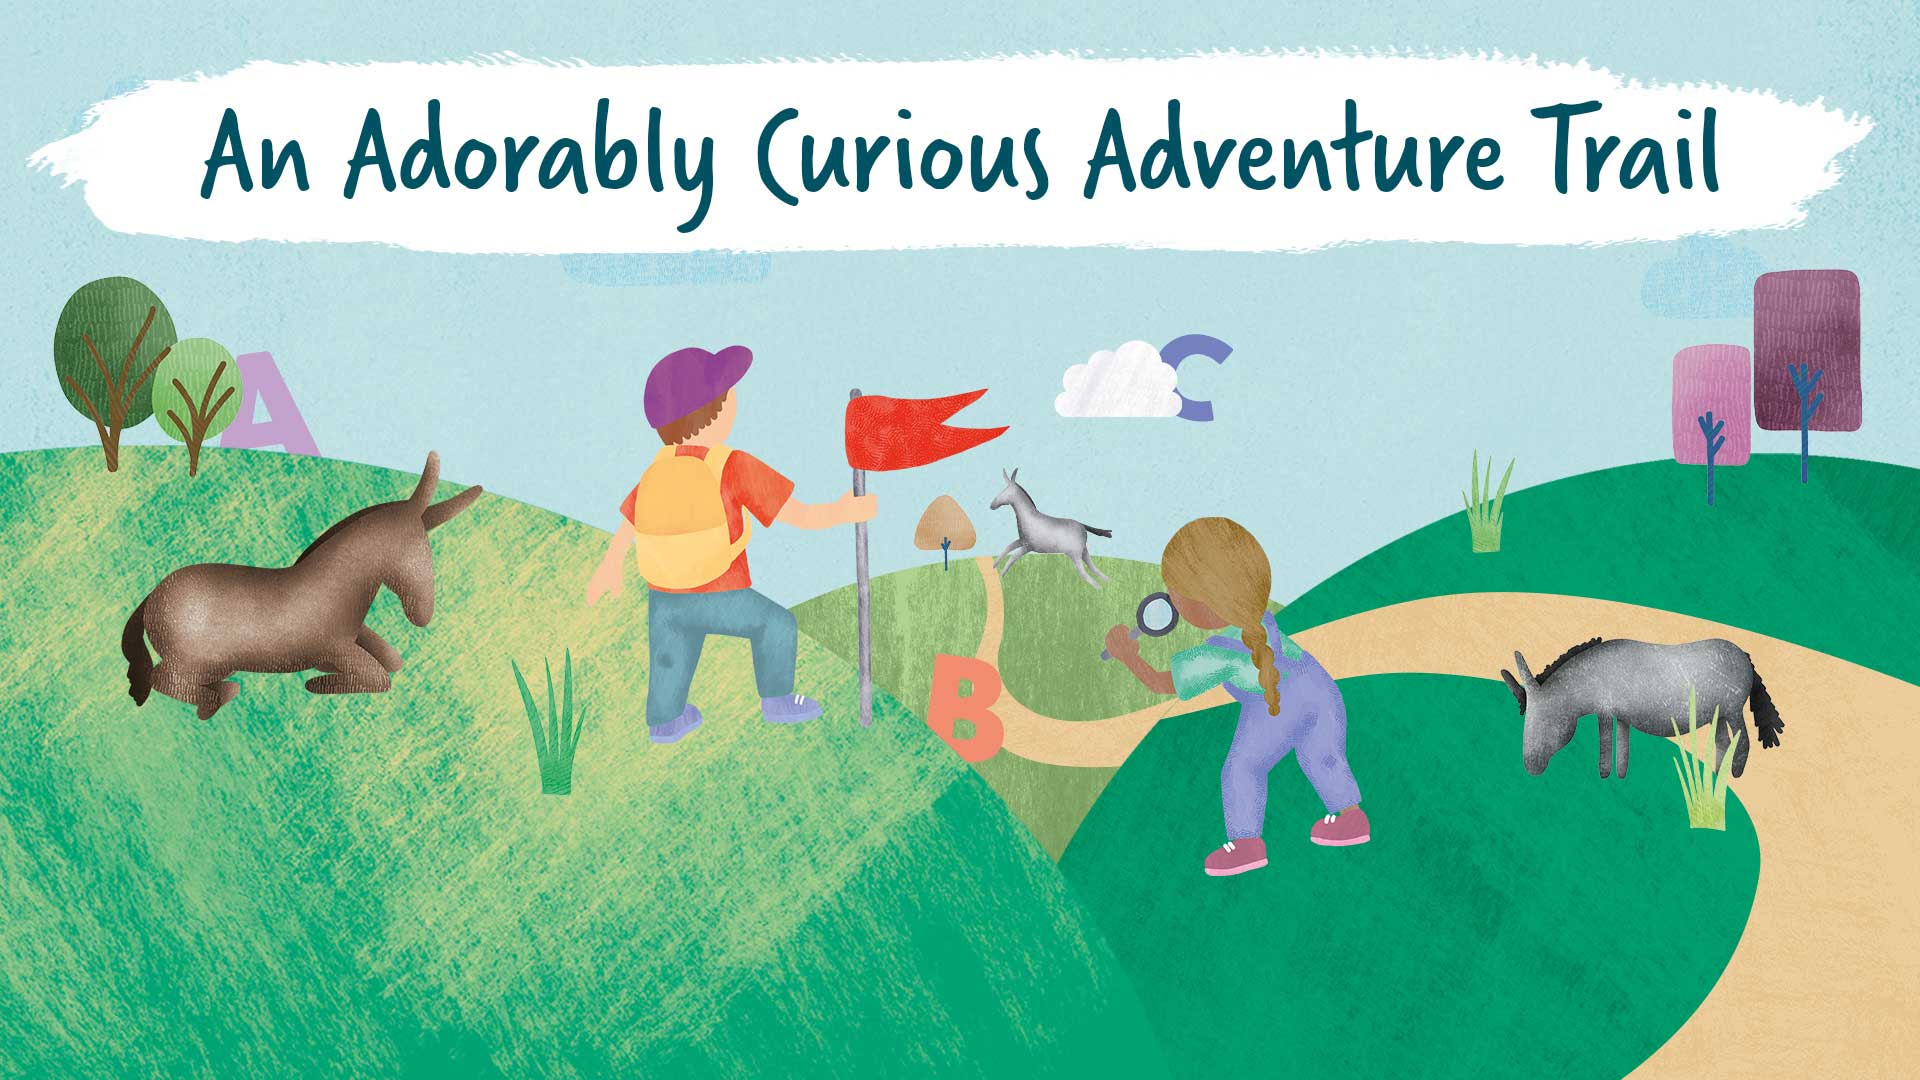 An Adorably Curious Adventure Trail illustration